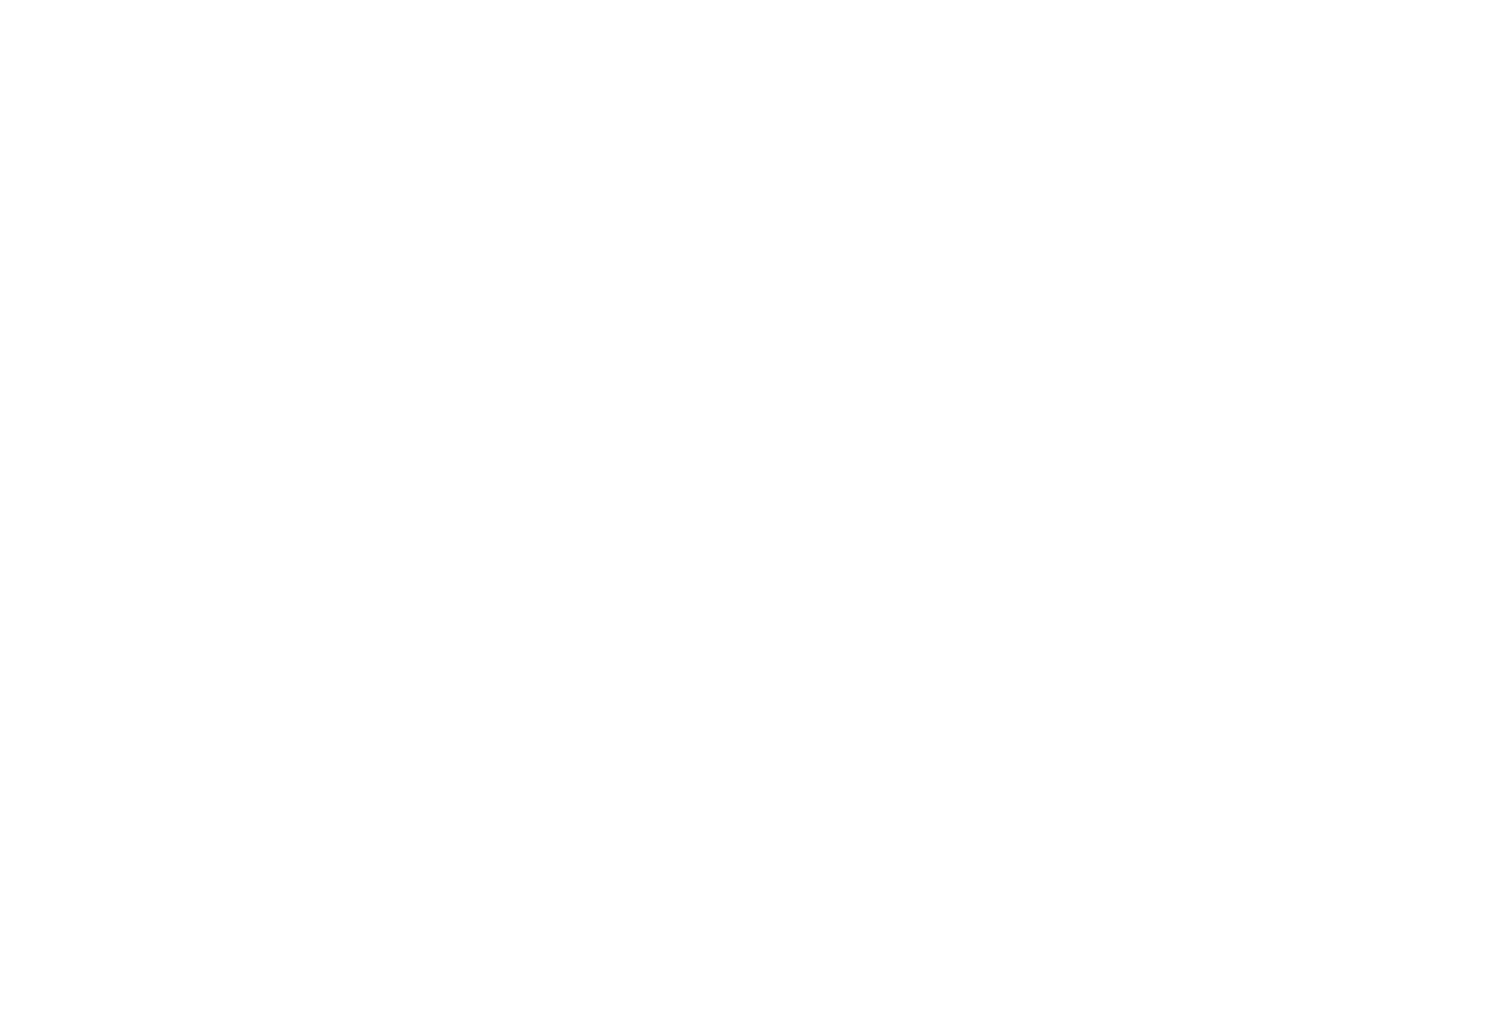 sailteam.io